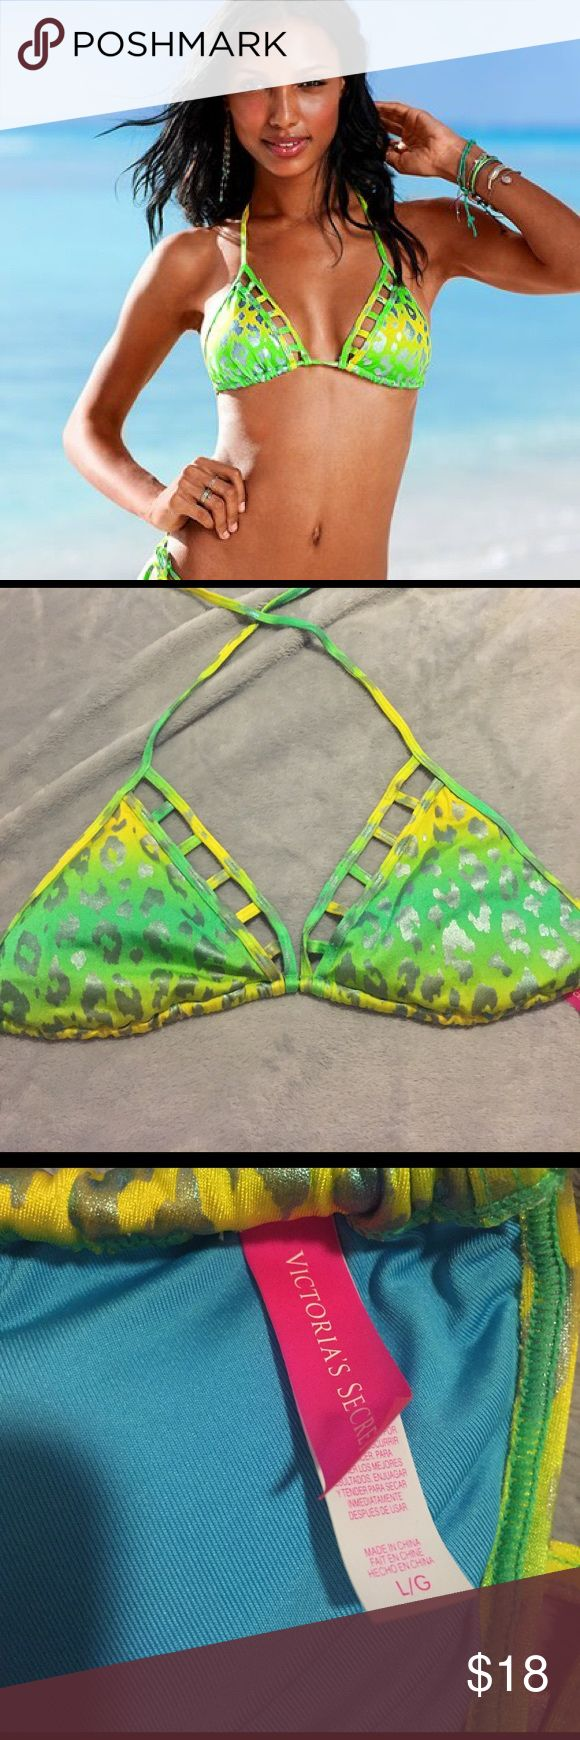 Victoria's Secret bikini top!! Green and yellow cheetah print with square cut outs. Never worn size large!! Victoria's Secret perfect condition looks so cute on!! Victoria's Secret Swim Bikinis